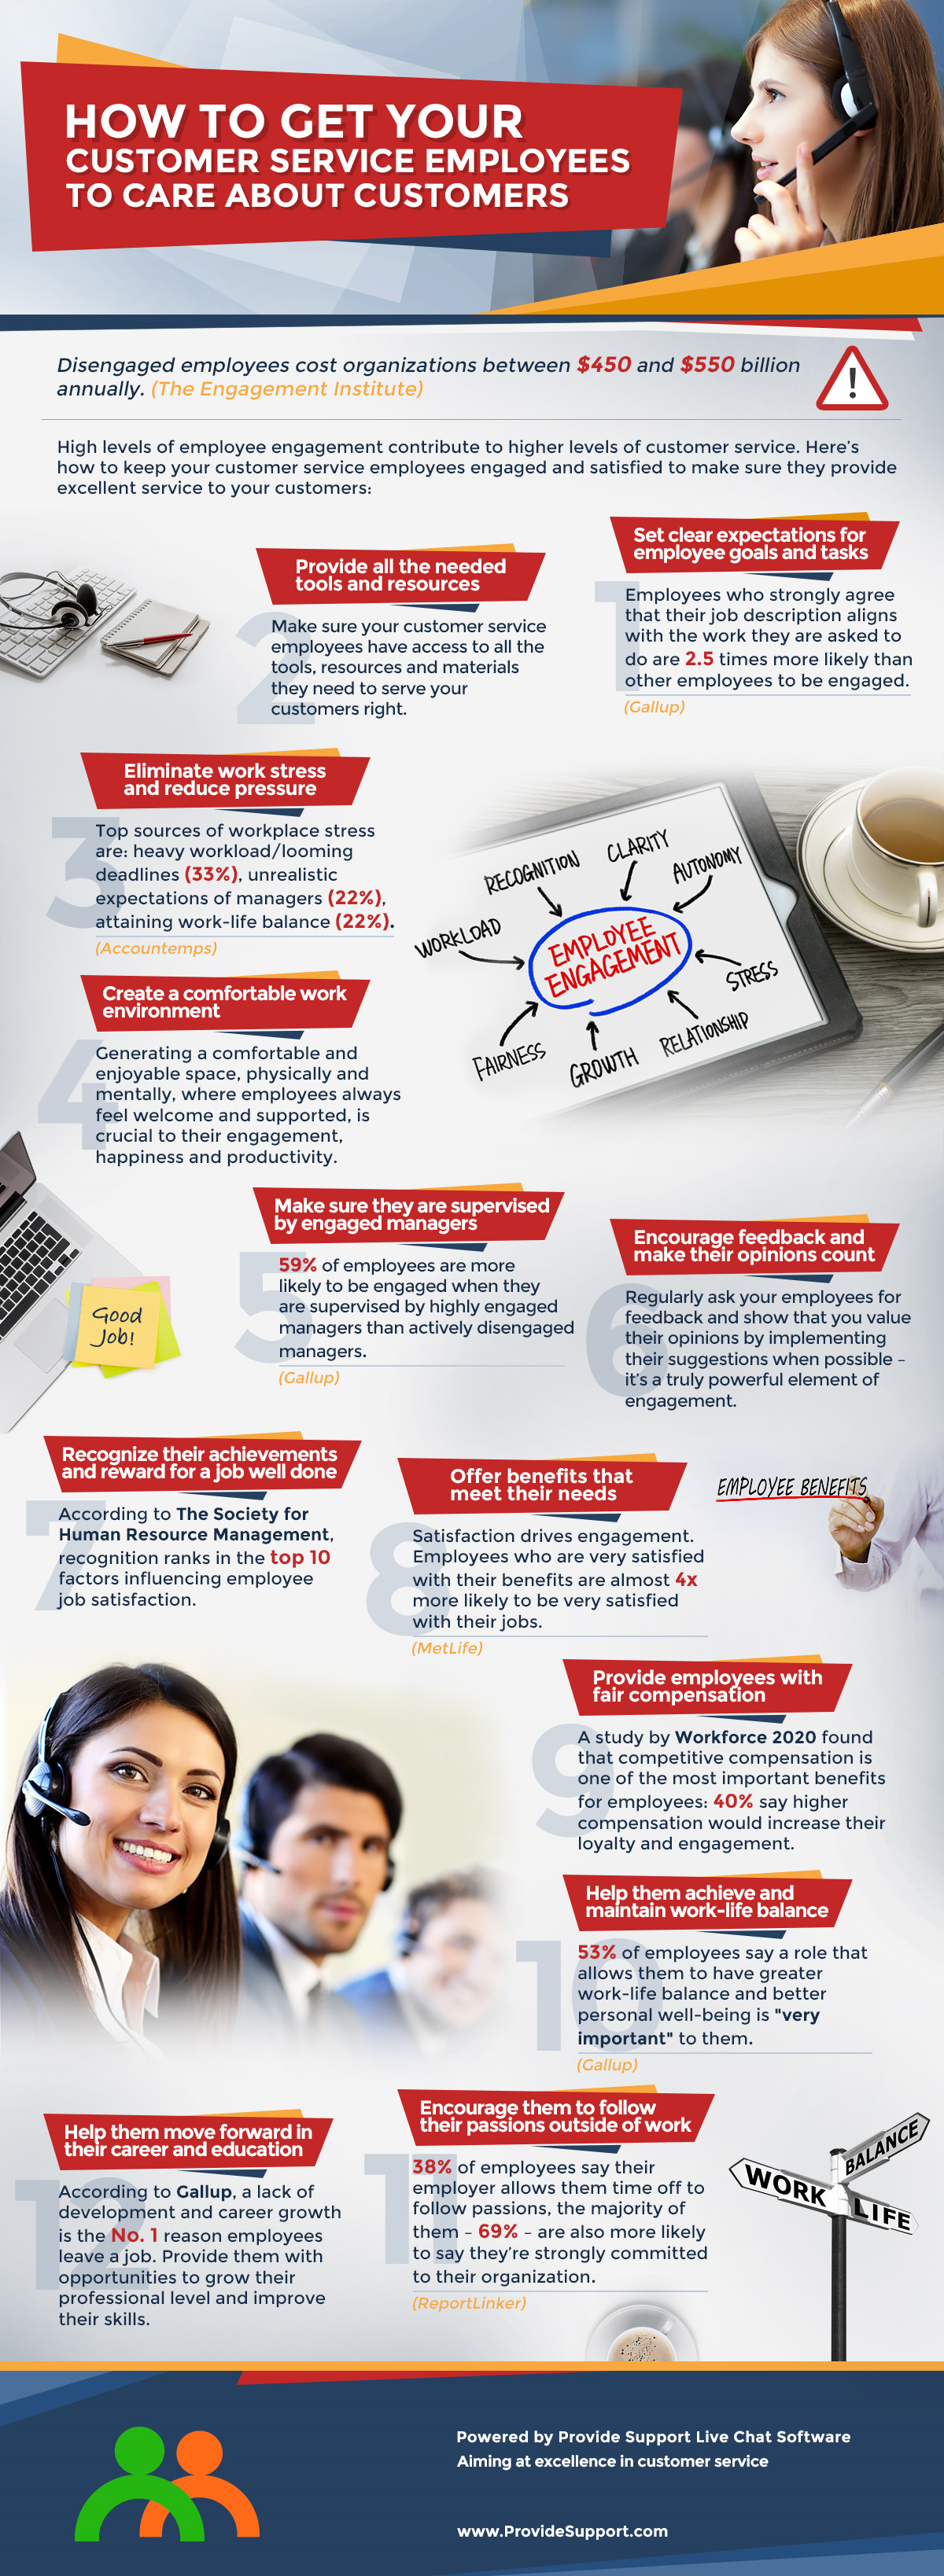 How to Get Your Customer Service Employees to Care About Customers [Inforgraphic from Provide Support]